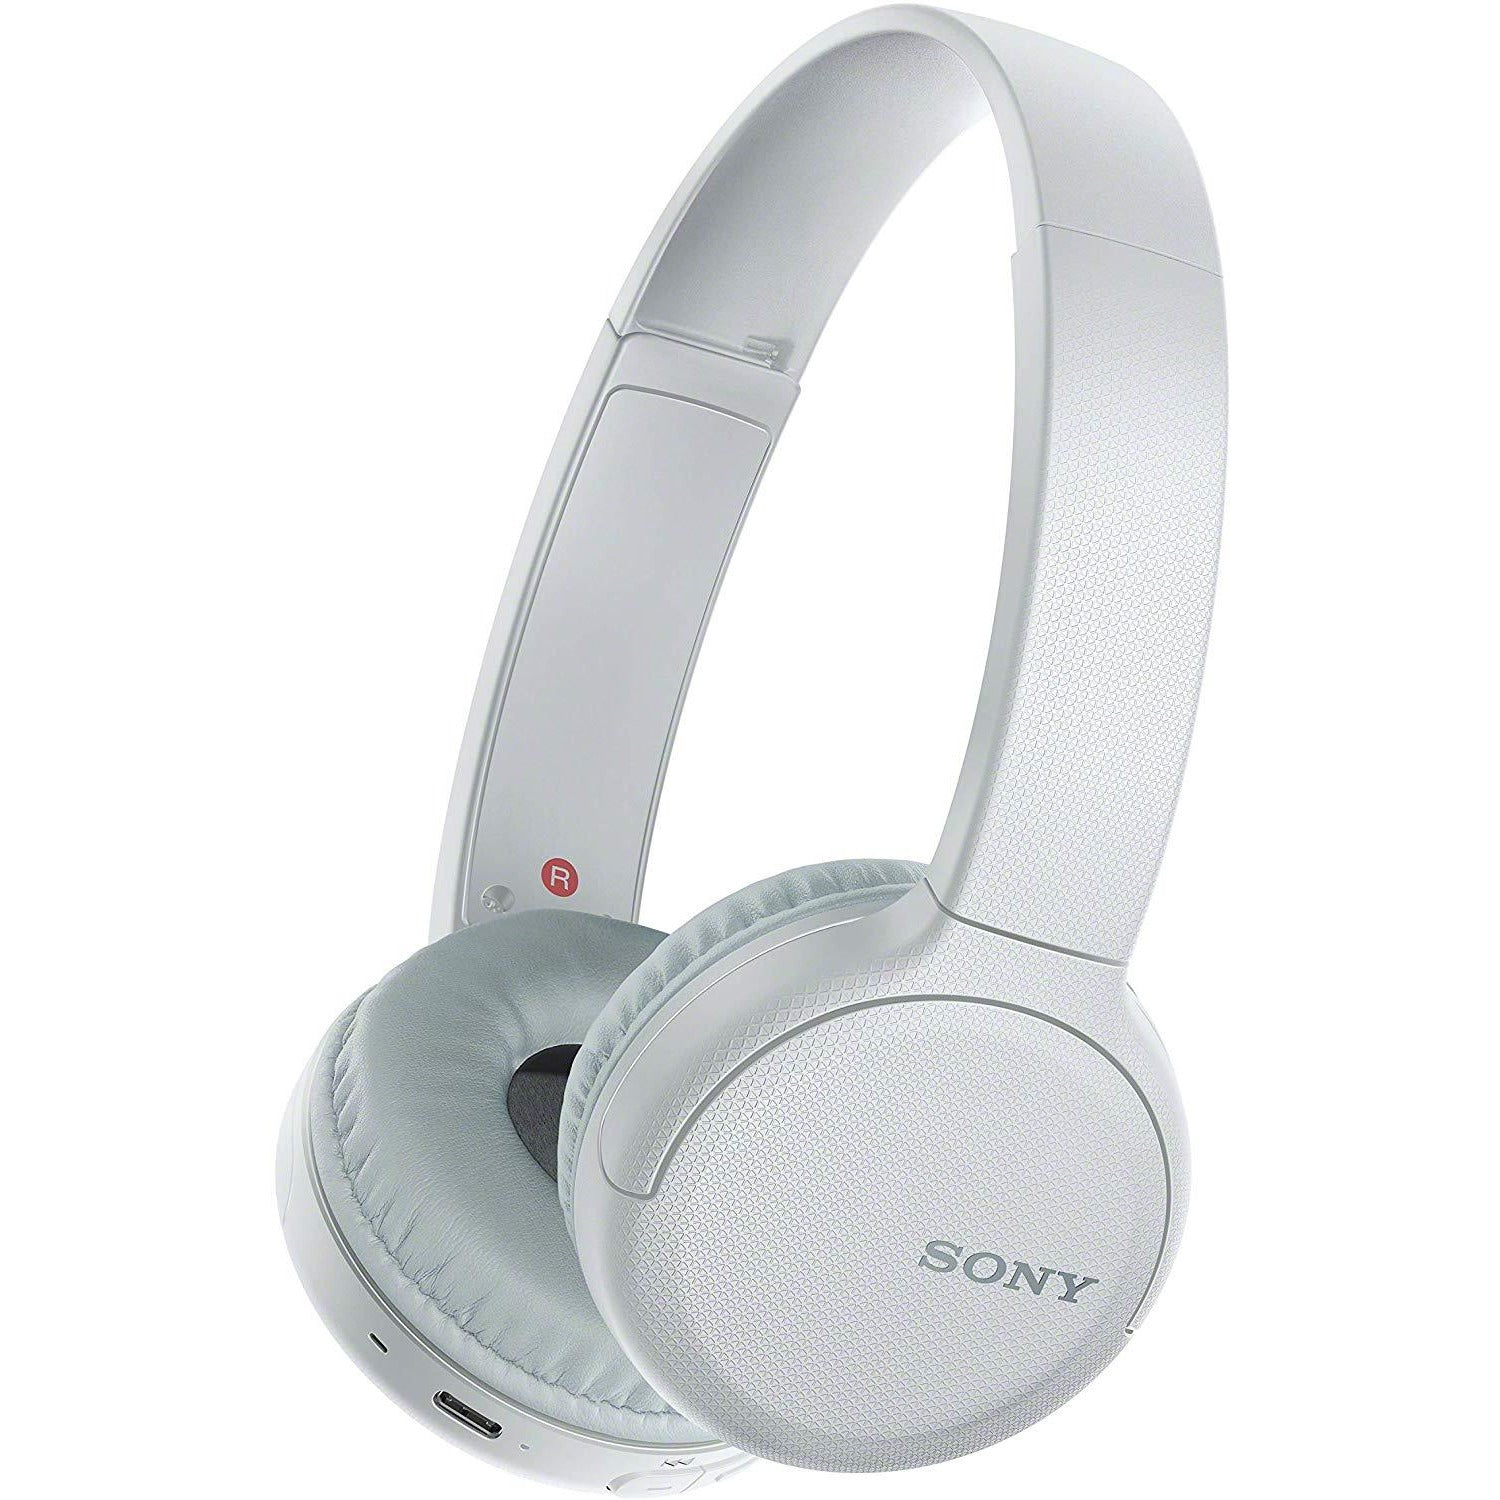 Sony Wh-CH510 Wireless Headphones White [Accessories]